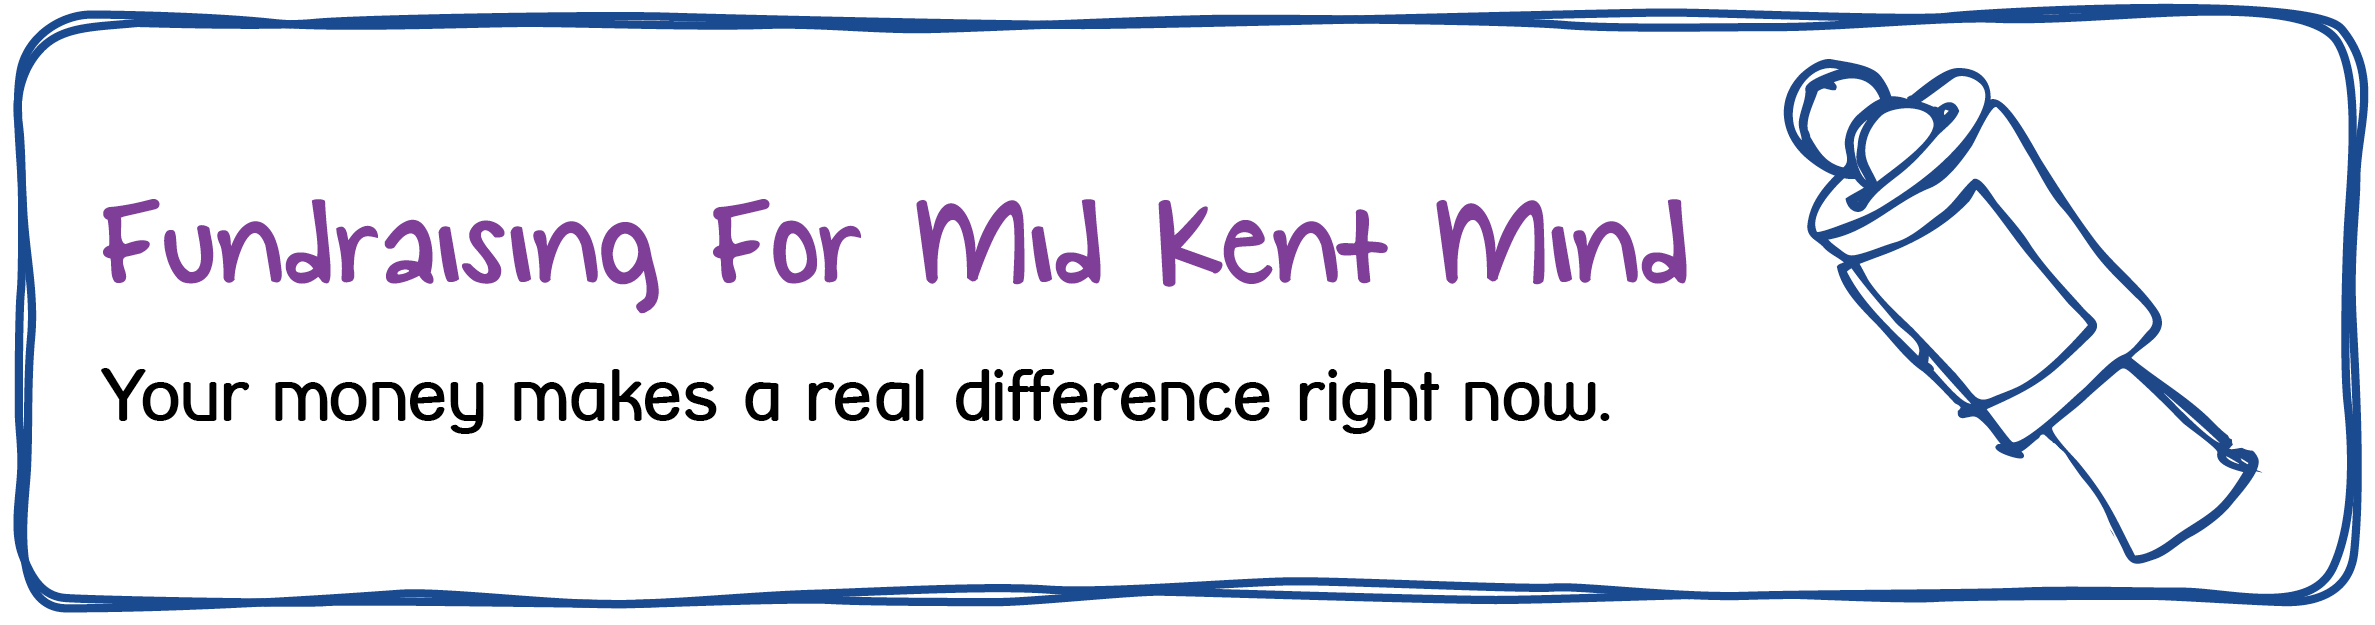 Fundraising for Mid Kent Mind. Your money makes a real difference to the support we can offer the community right now.